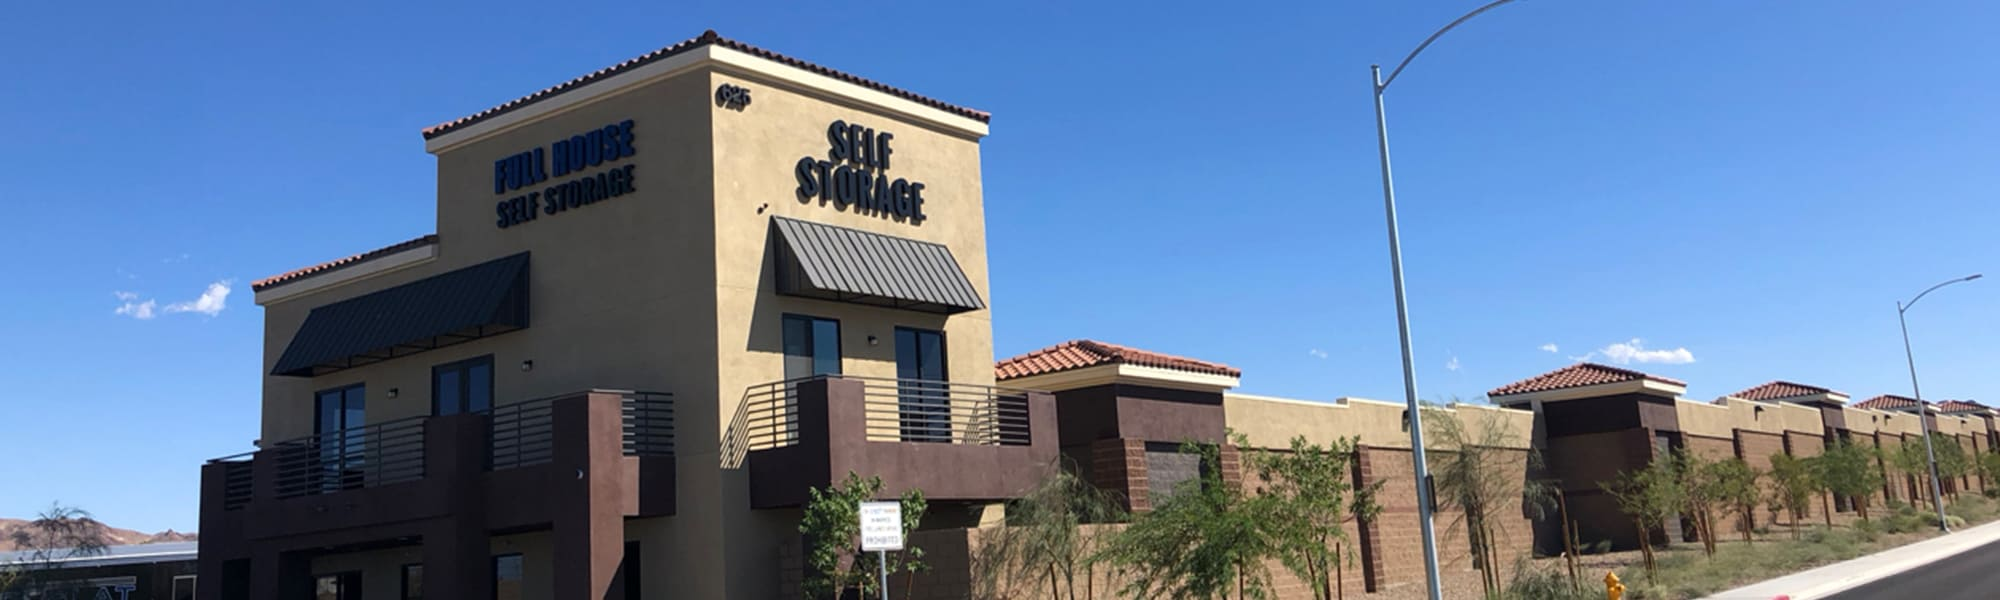 Self Storage at Golden State Storage Cadence in Henderson, Nevada